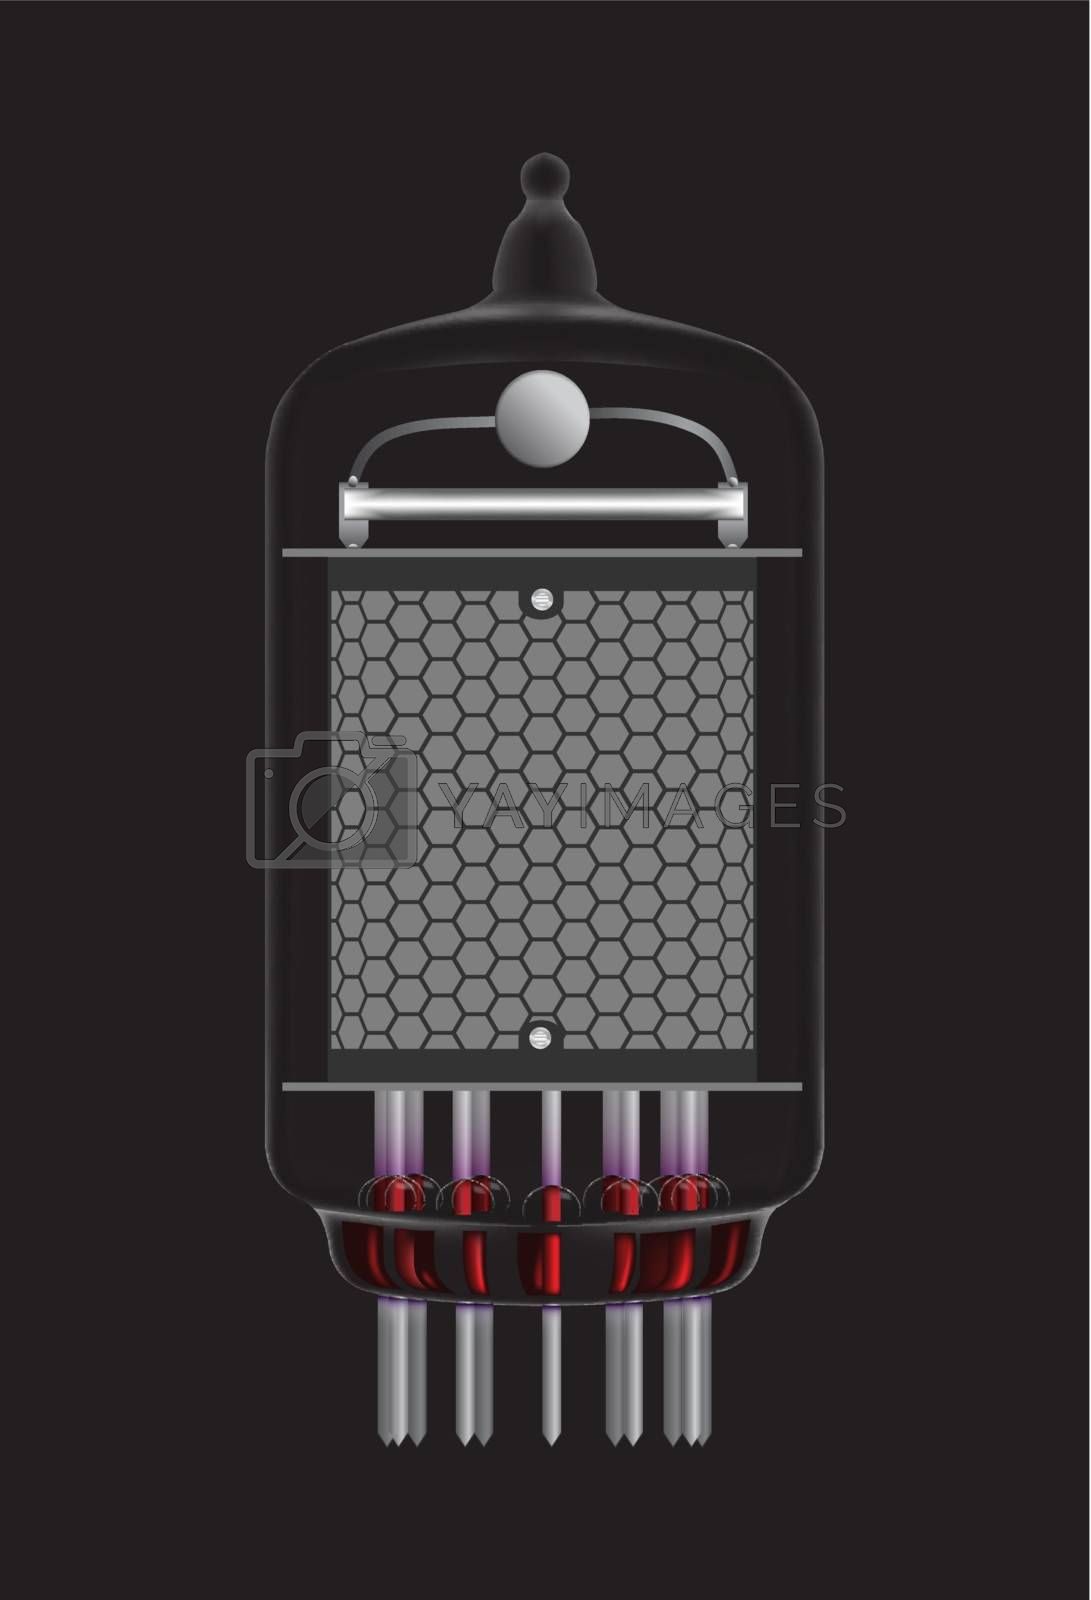 Nixie tube indicator. Transparency guaranteed. Vector illustration.